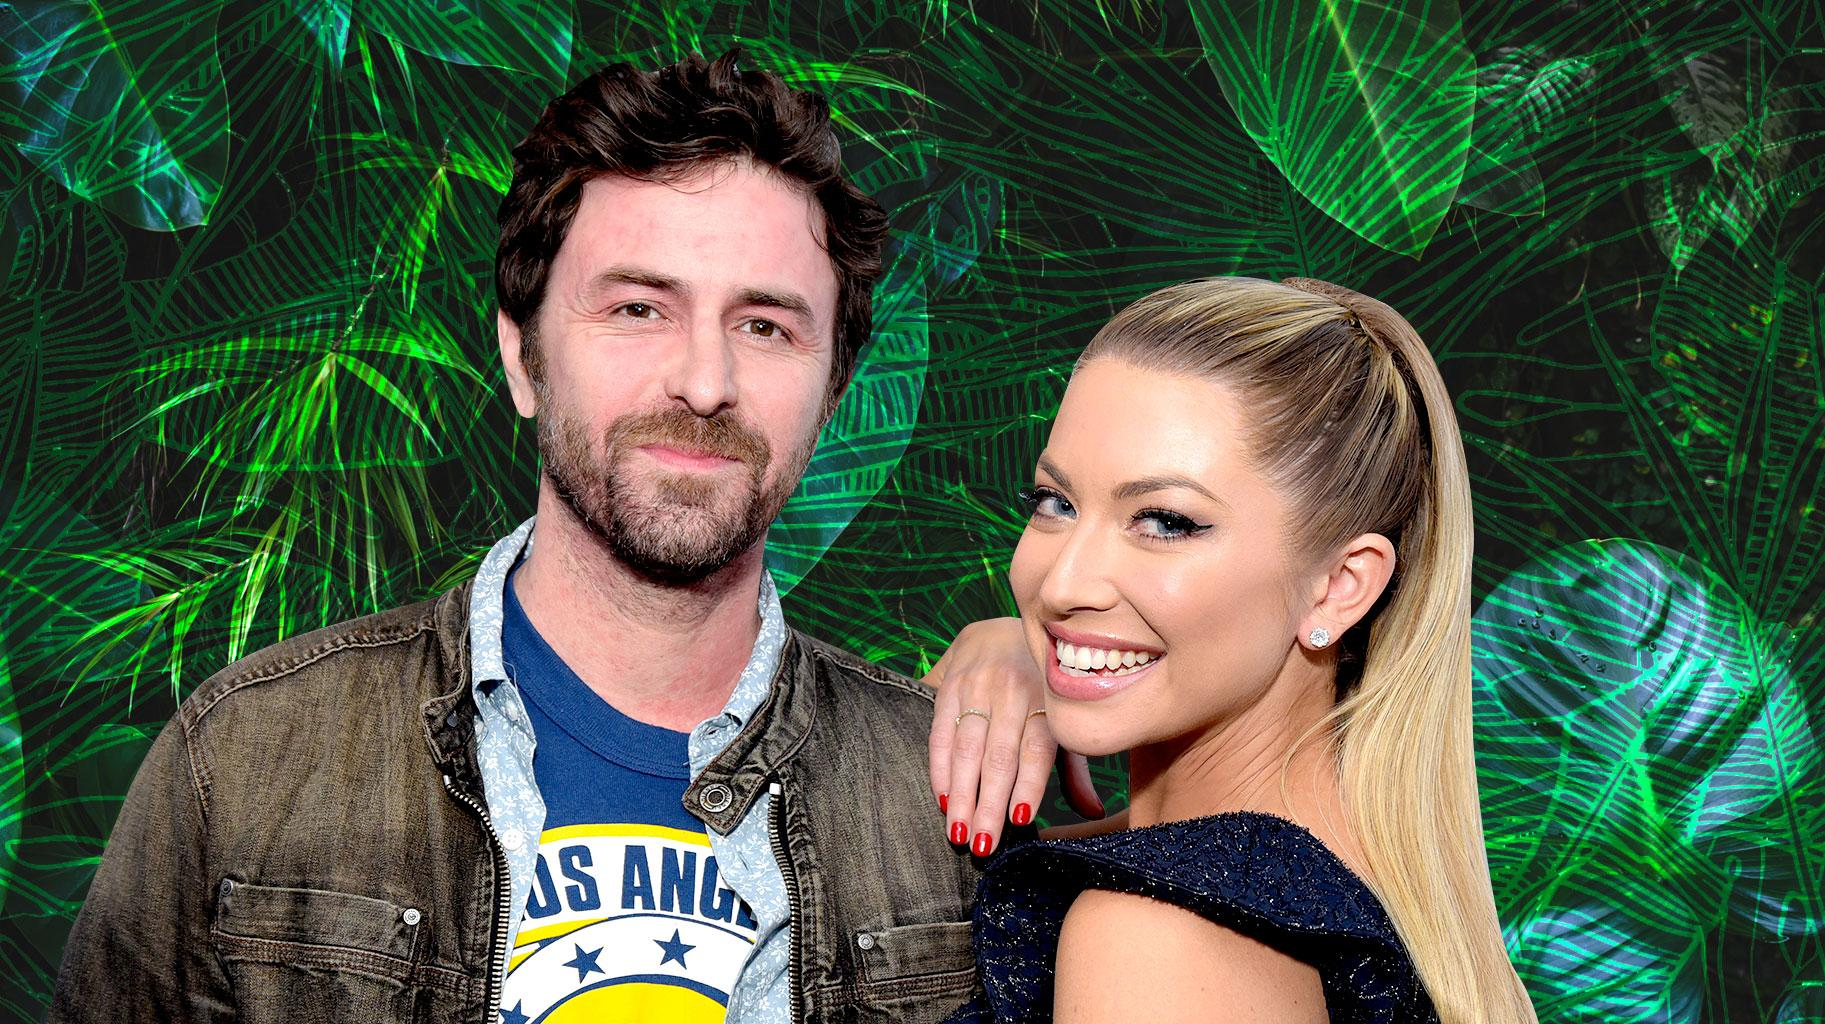 Vanderpump Rules: Stassi Schroeder Reveals She Was Trying For A Baby Before Beau Clark Engagement